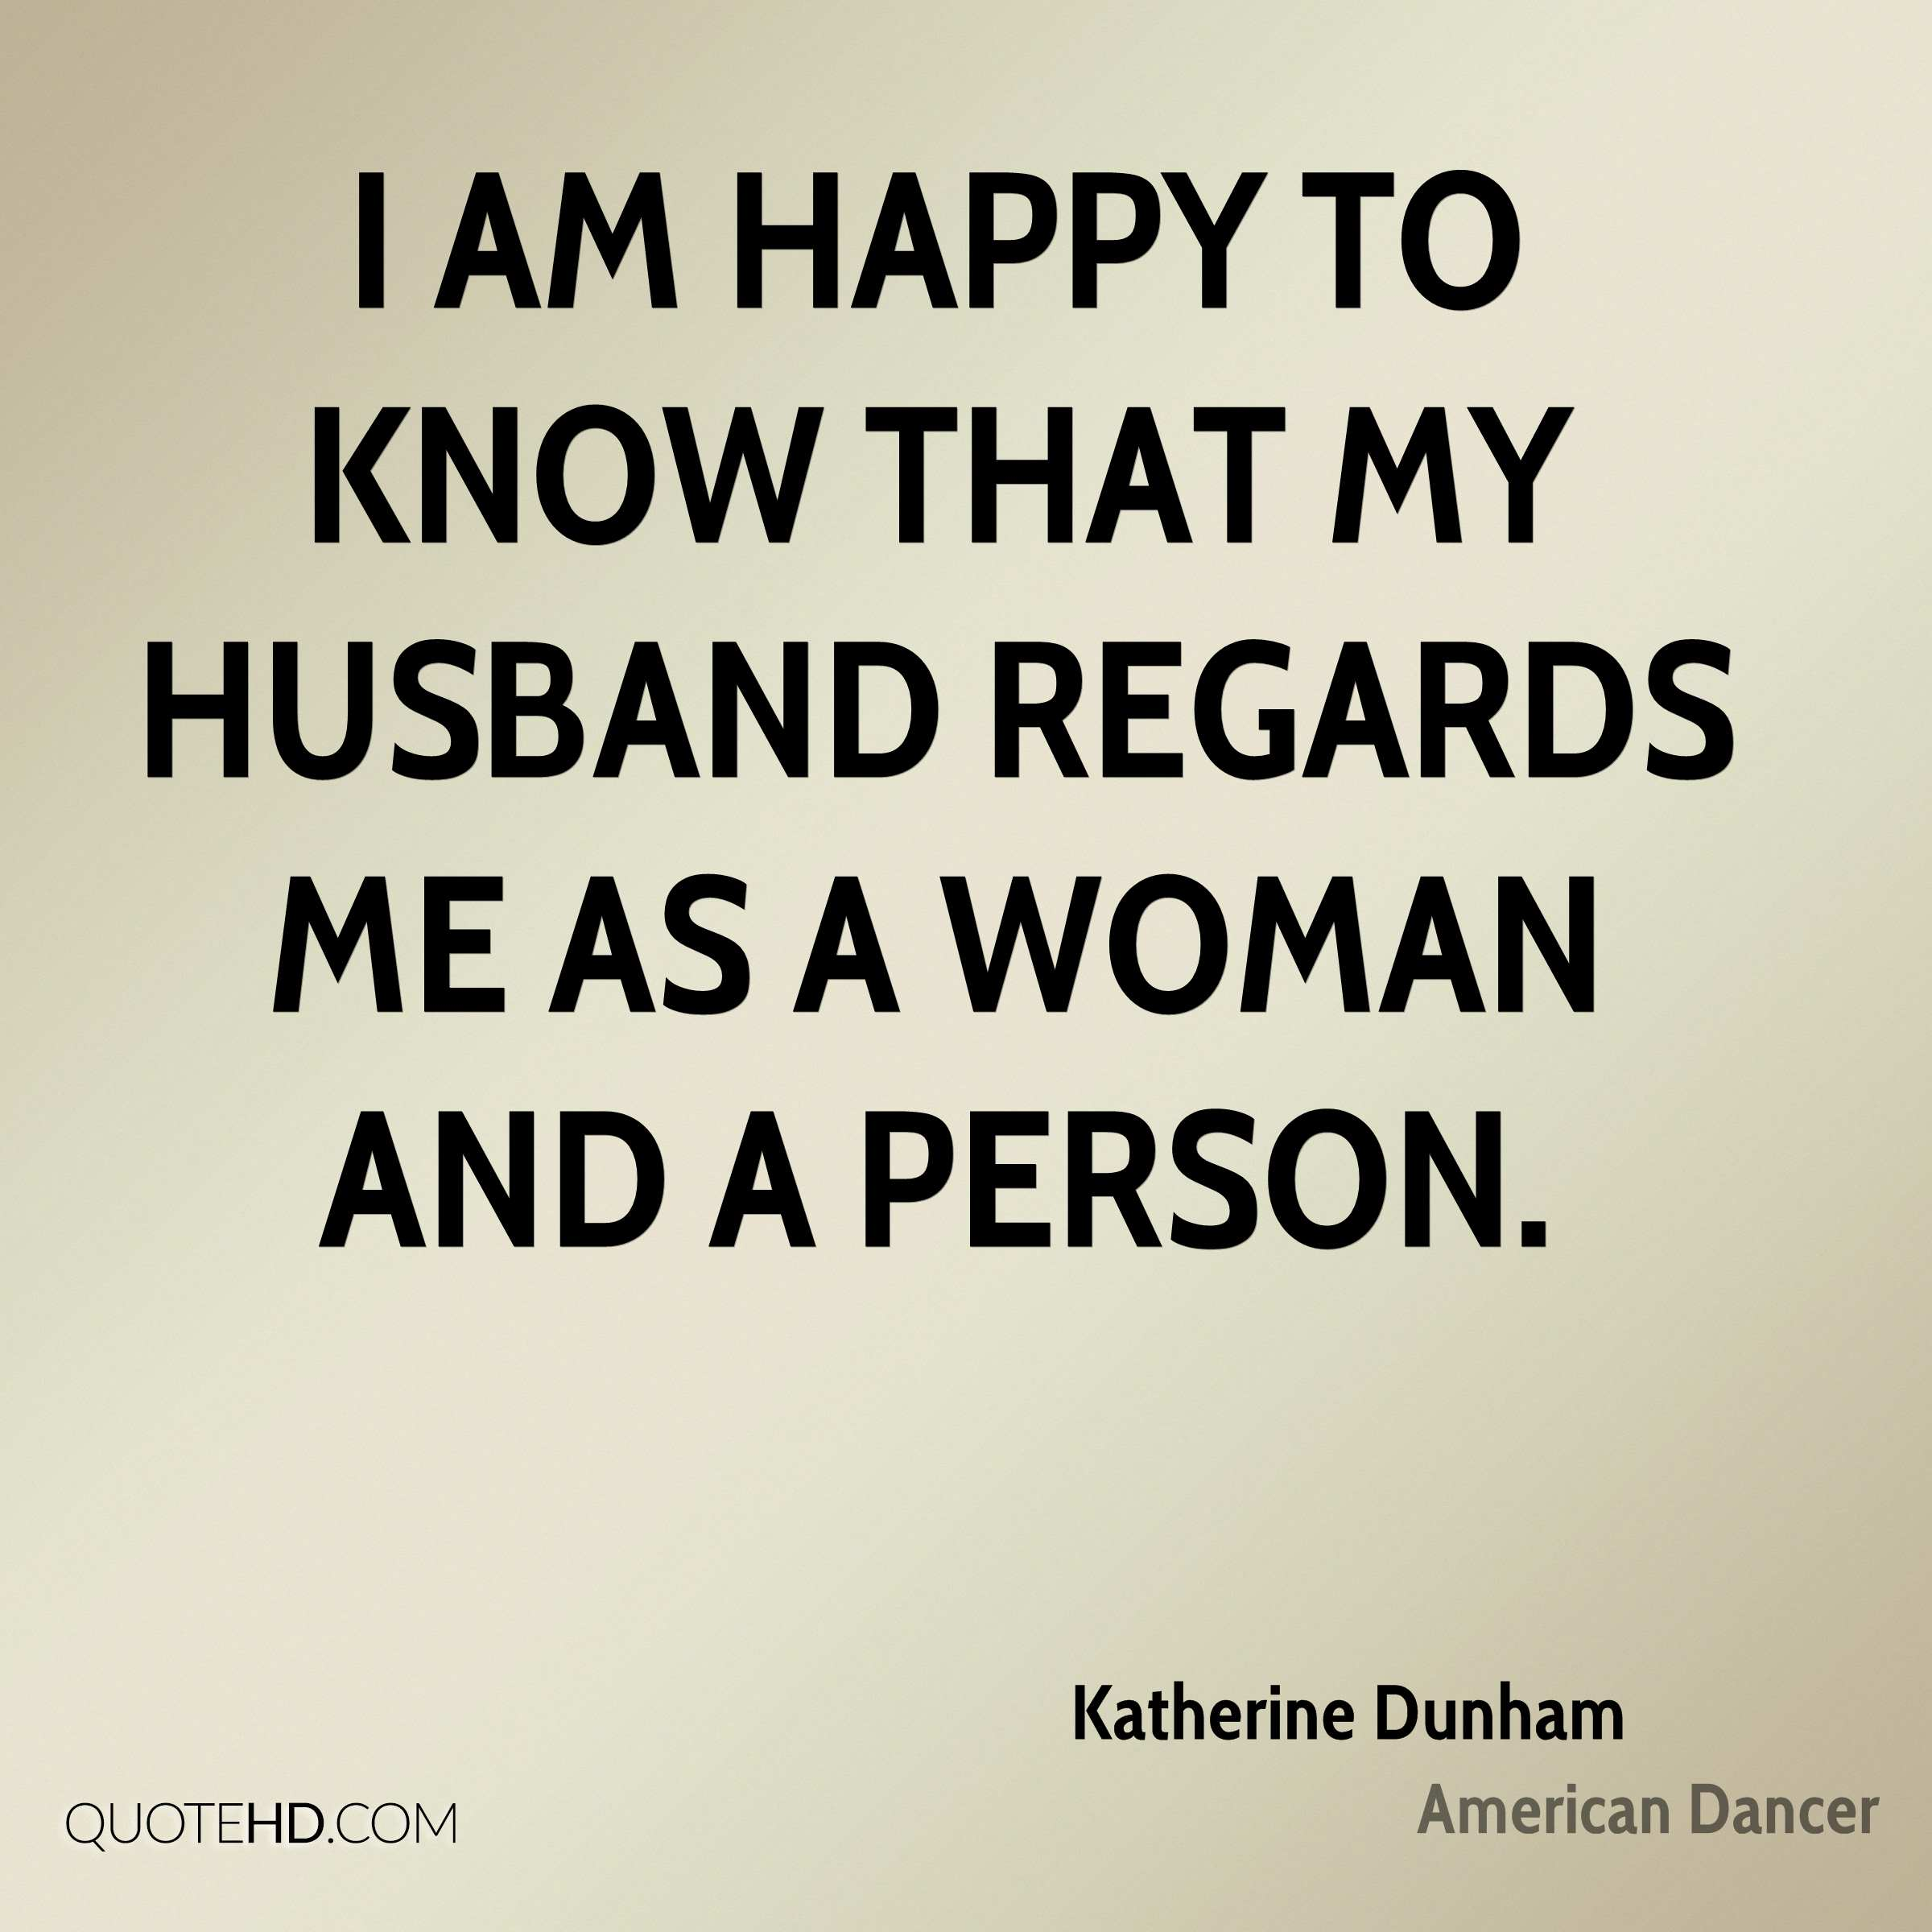 Quotes About Happy Person Katherine Dunham Husband Quotes  Quotehd